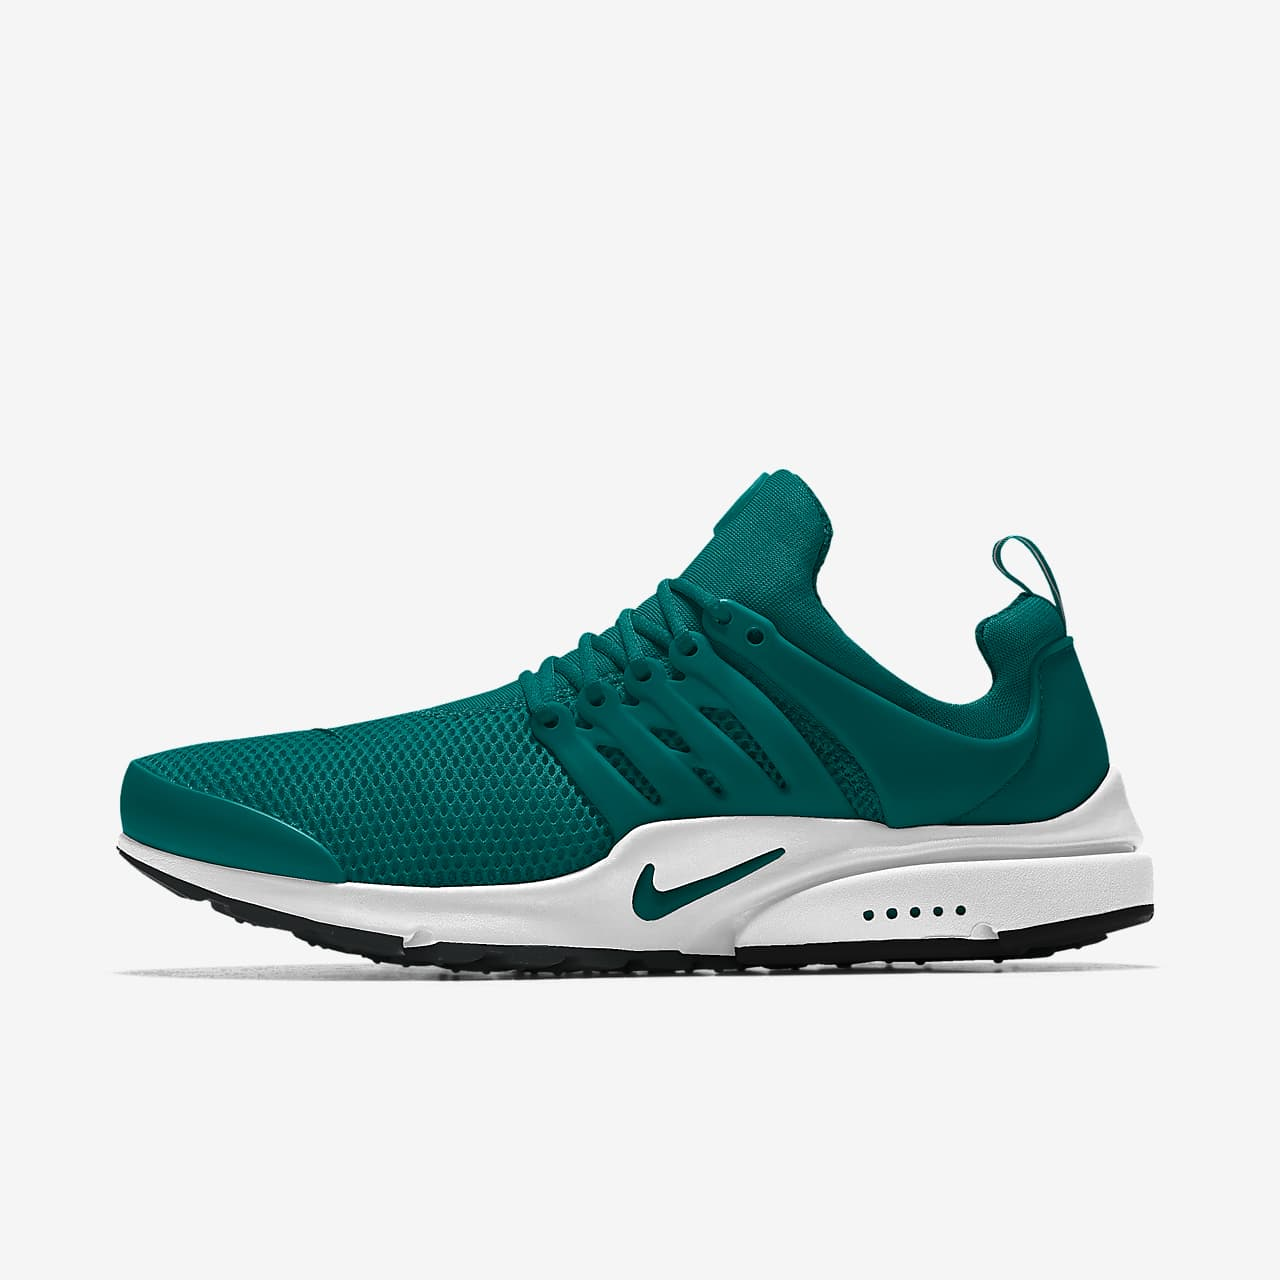 Chaussure personnalisable Nike Air Presto By You pour Homme